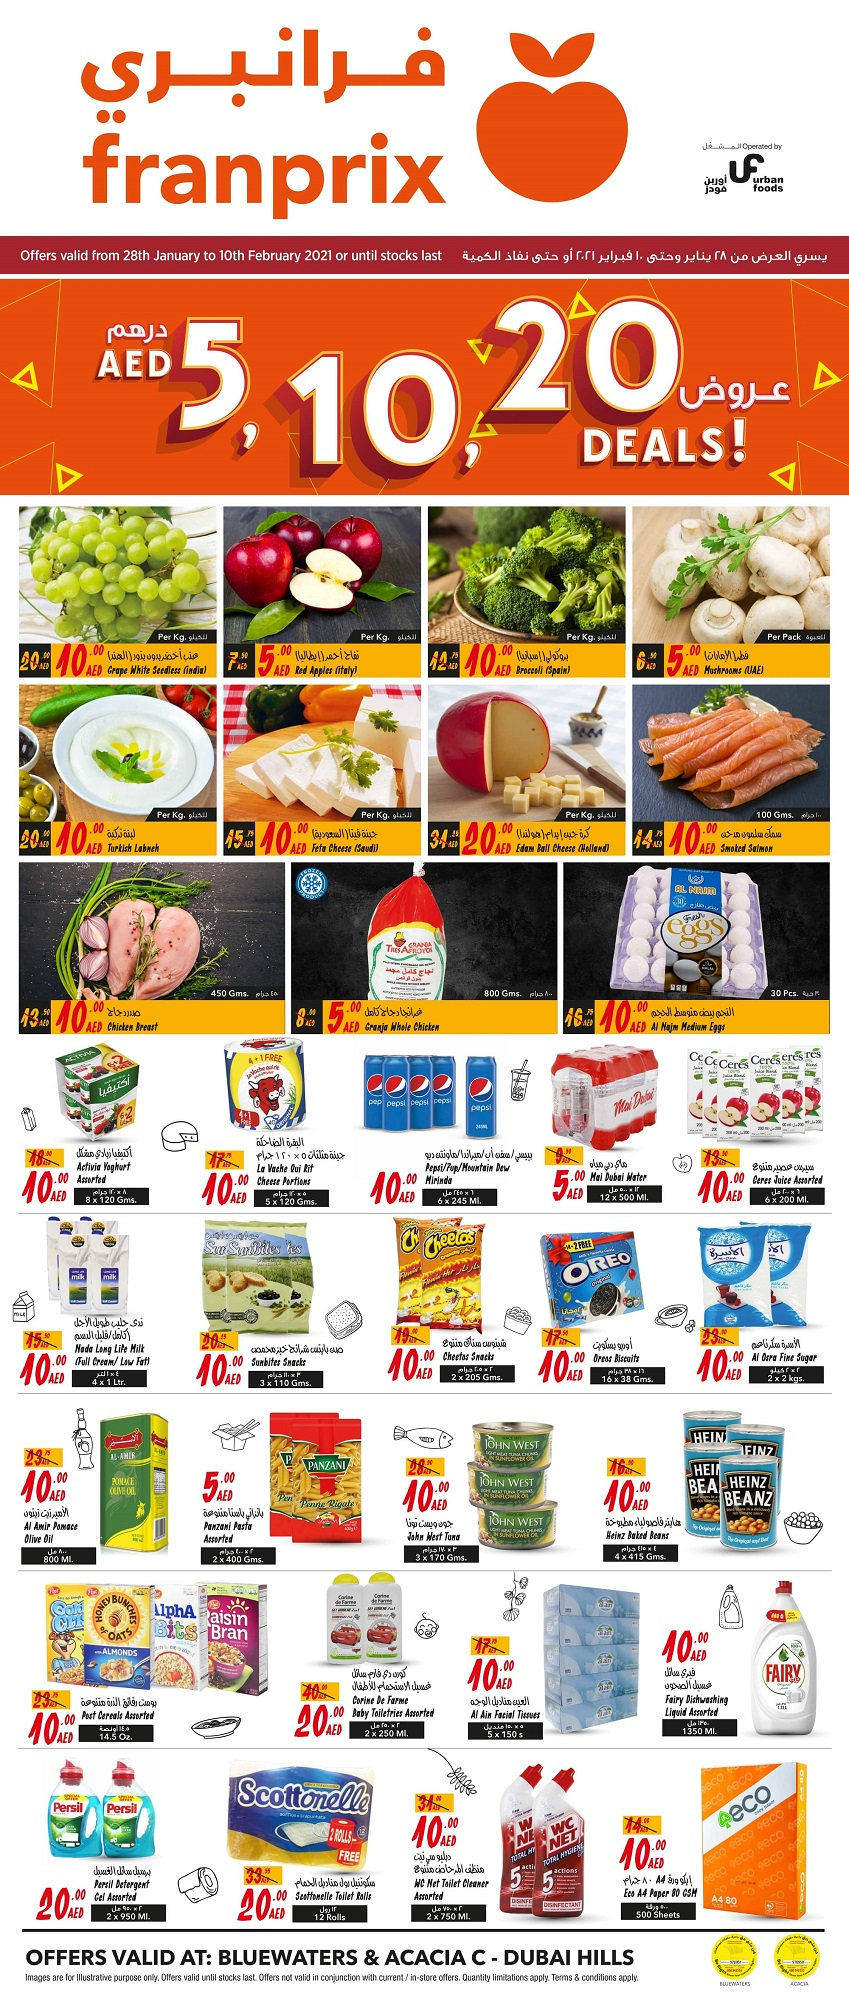 Franprix AED 5,10 and 20 offers - Dubaisavers